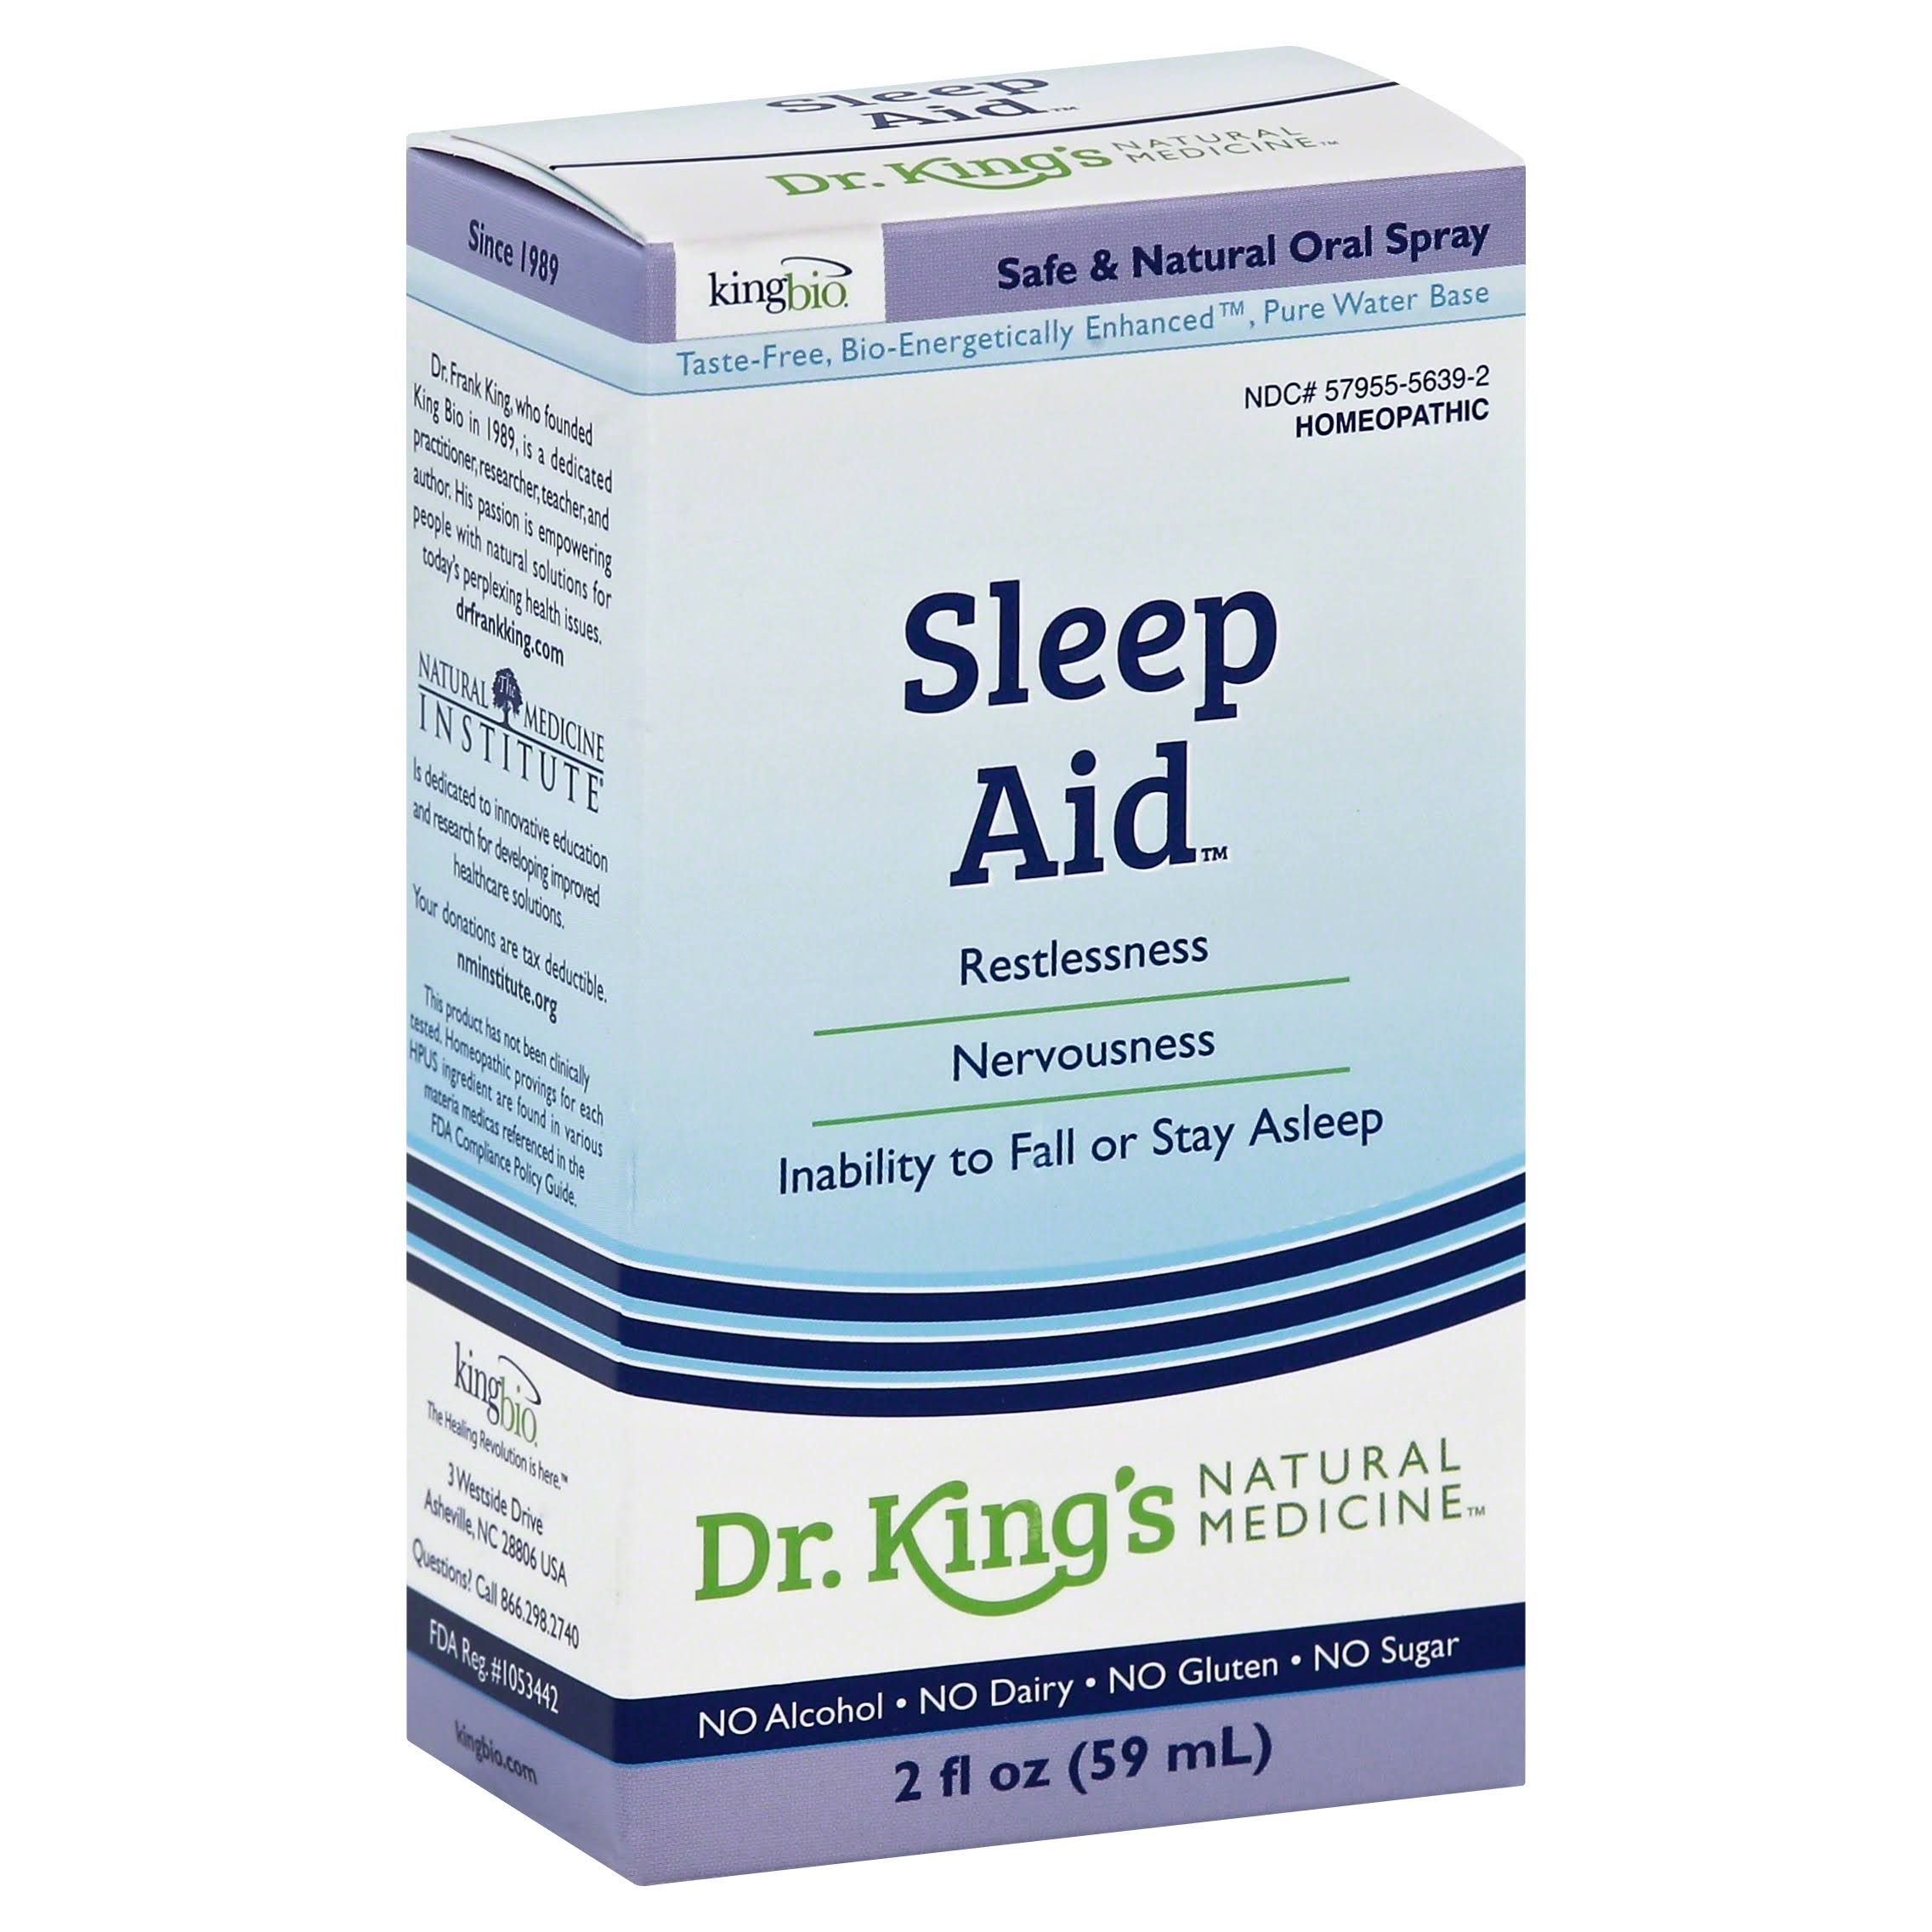 King Bio Homeopathic Sleep Aid Spray - 2oz